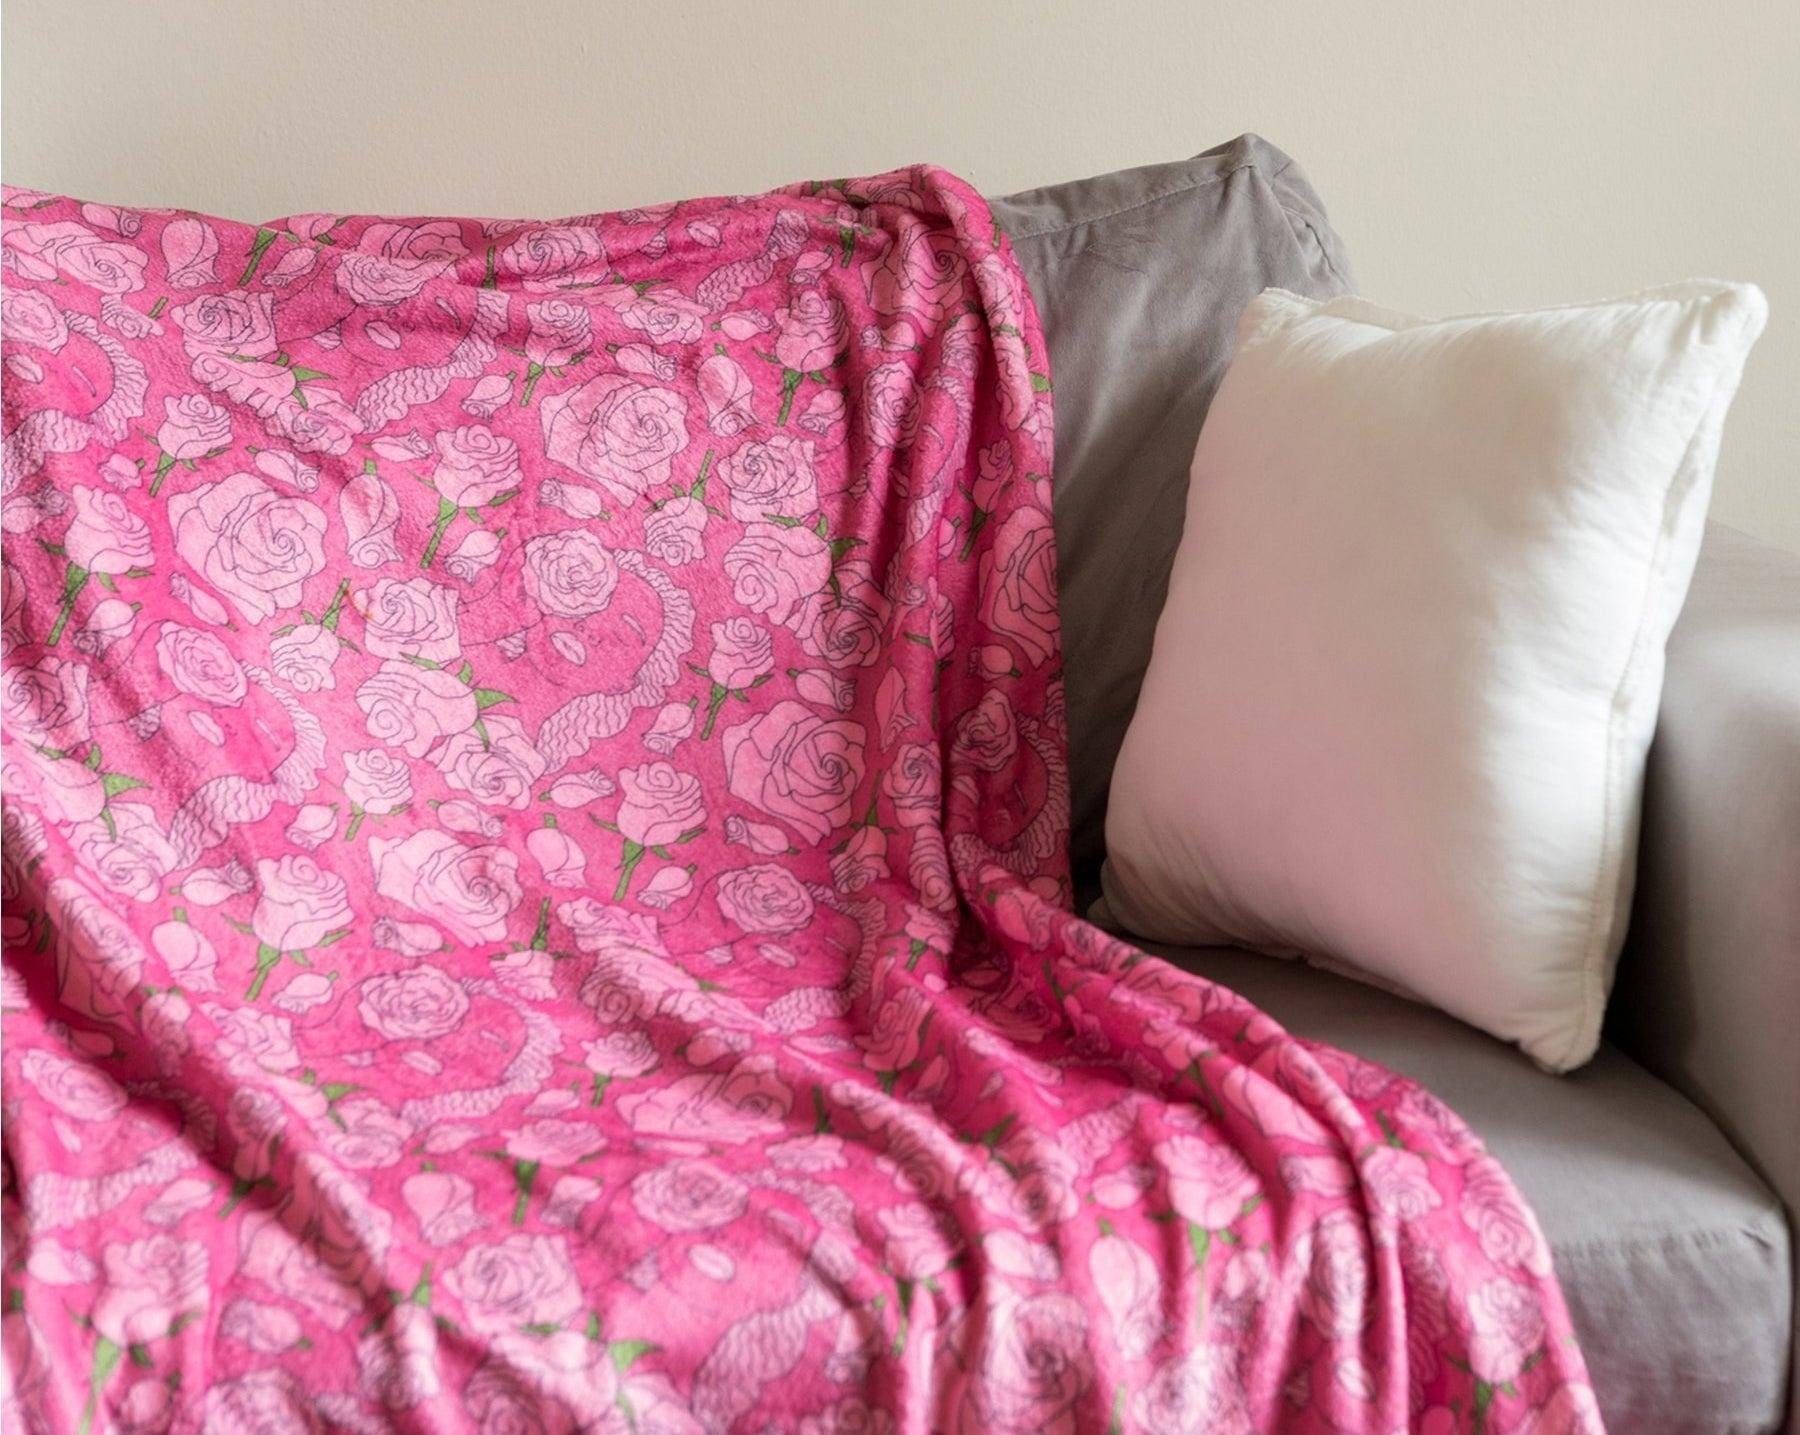 the pink floral throw blanket